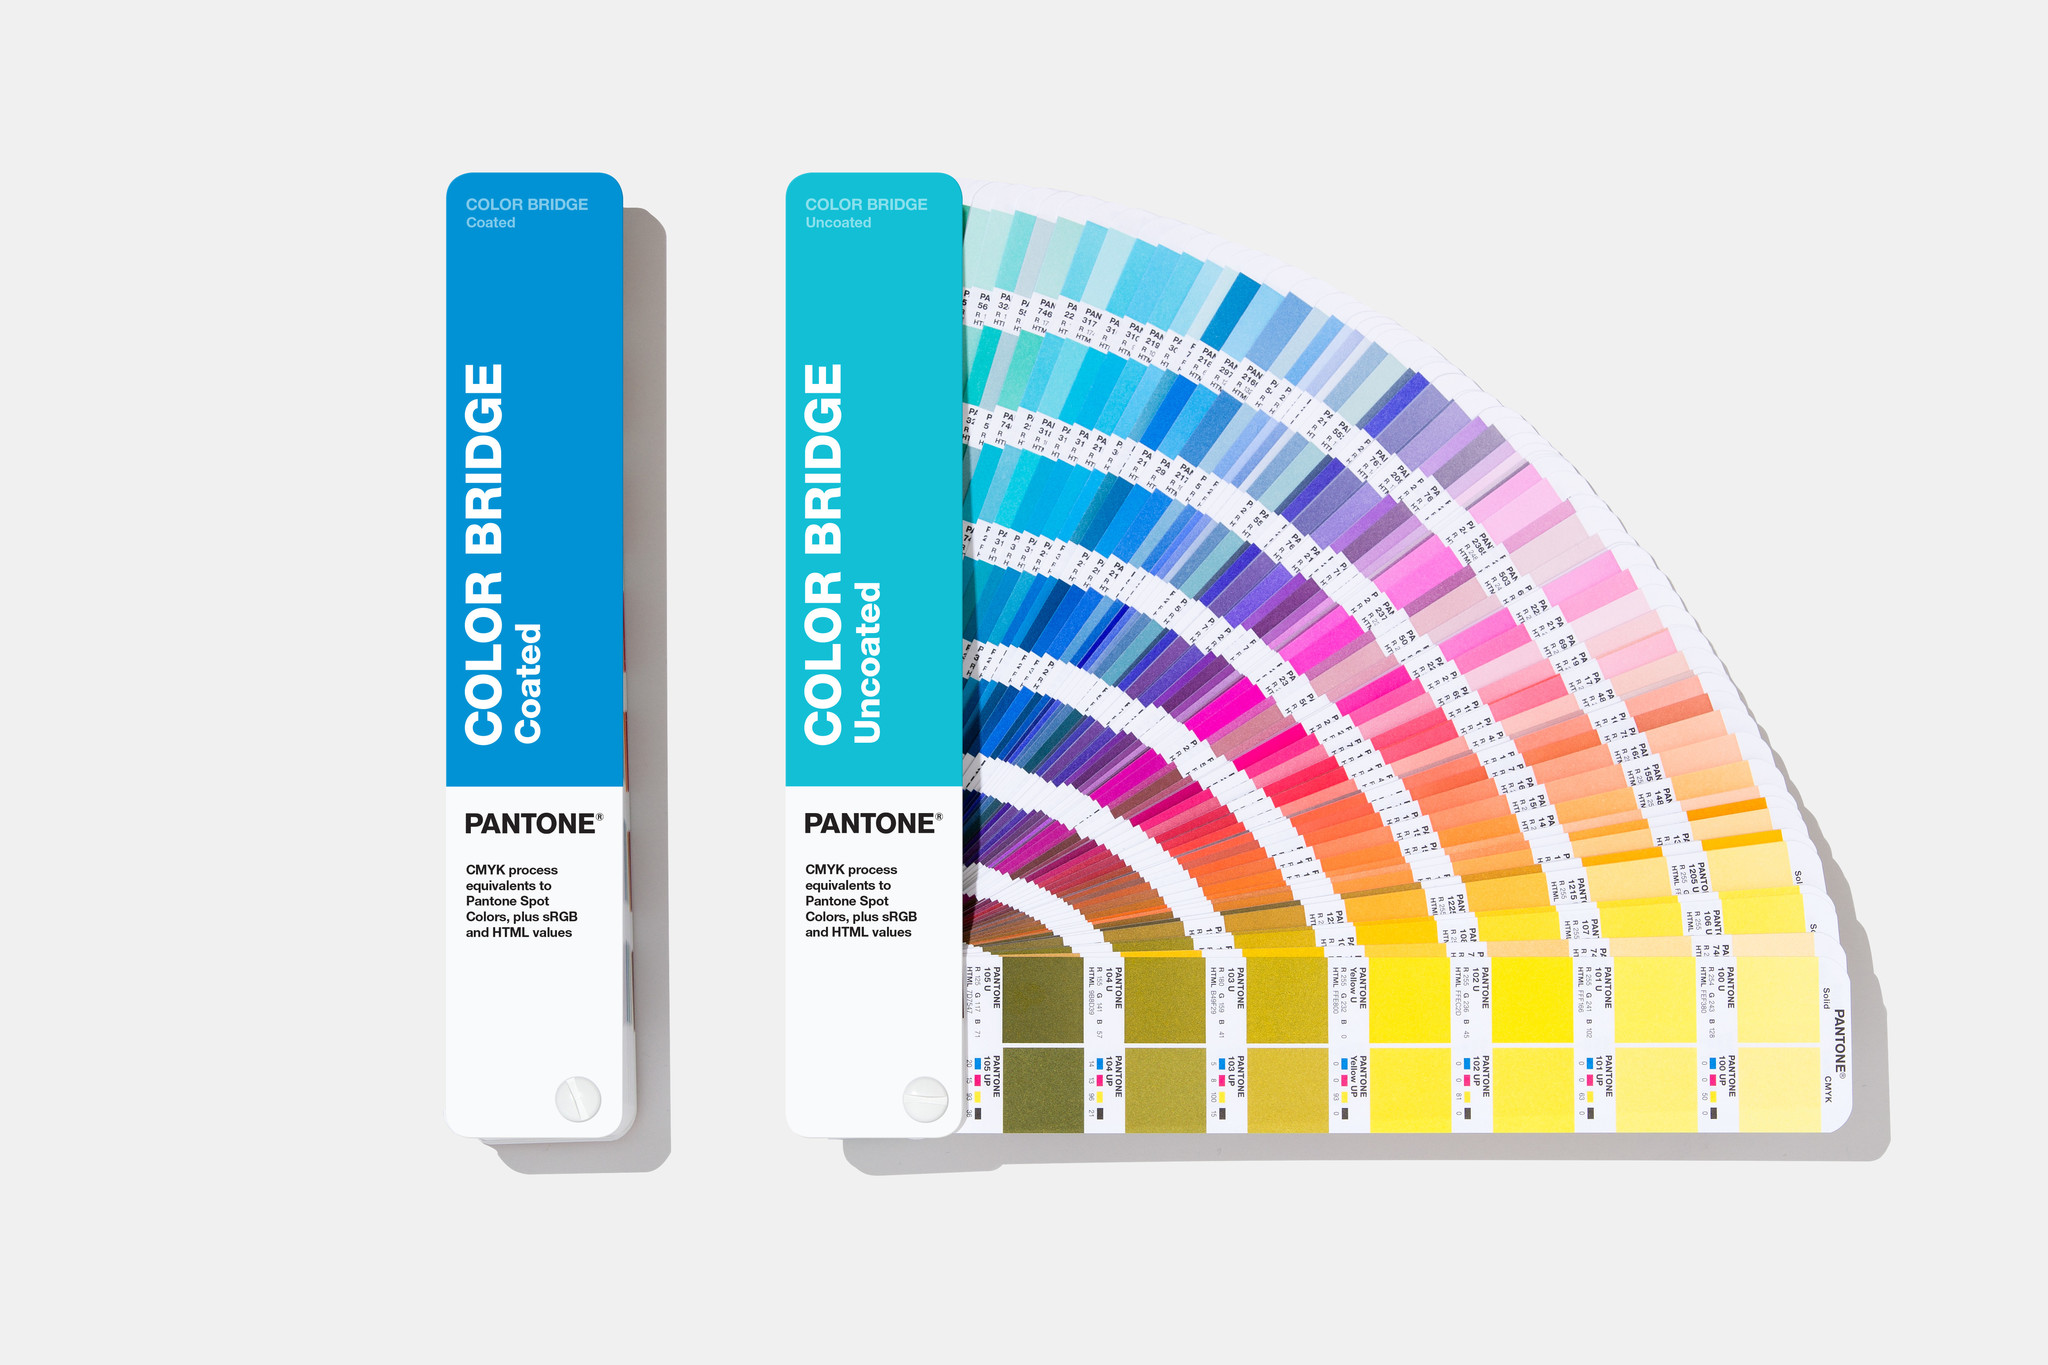 PANTONE PANTONE Color Bridge (Coated & Uncoated) - NEW 2019 guide